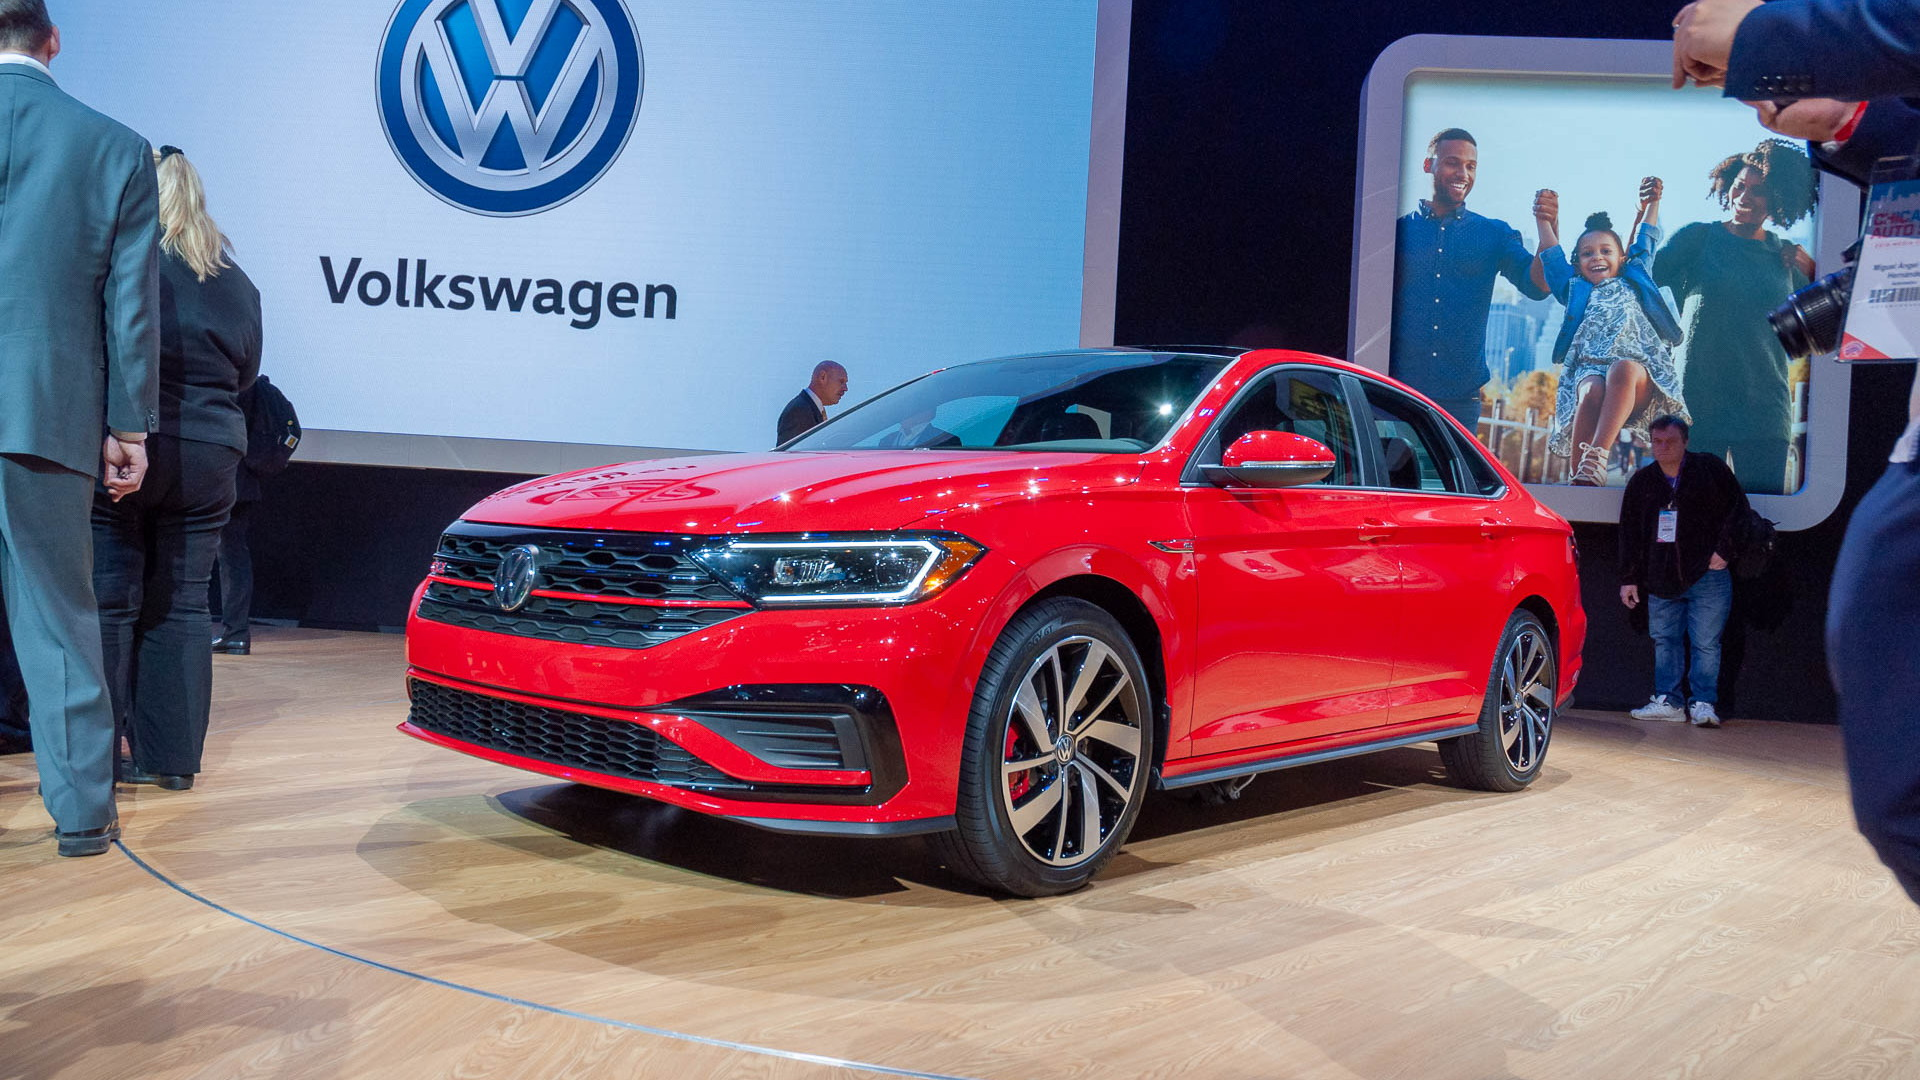 2019 Vw Jetta Gli Arrives With Gti And Golf R Hand Me Downs